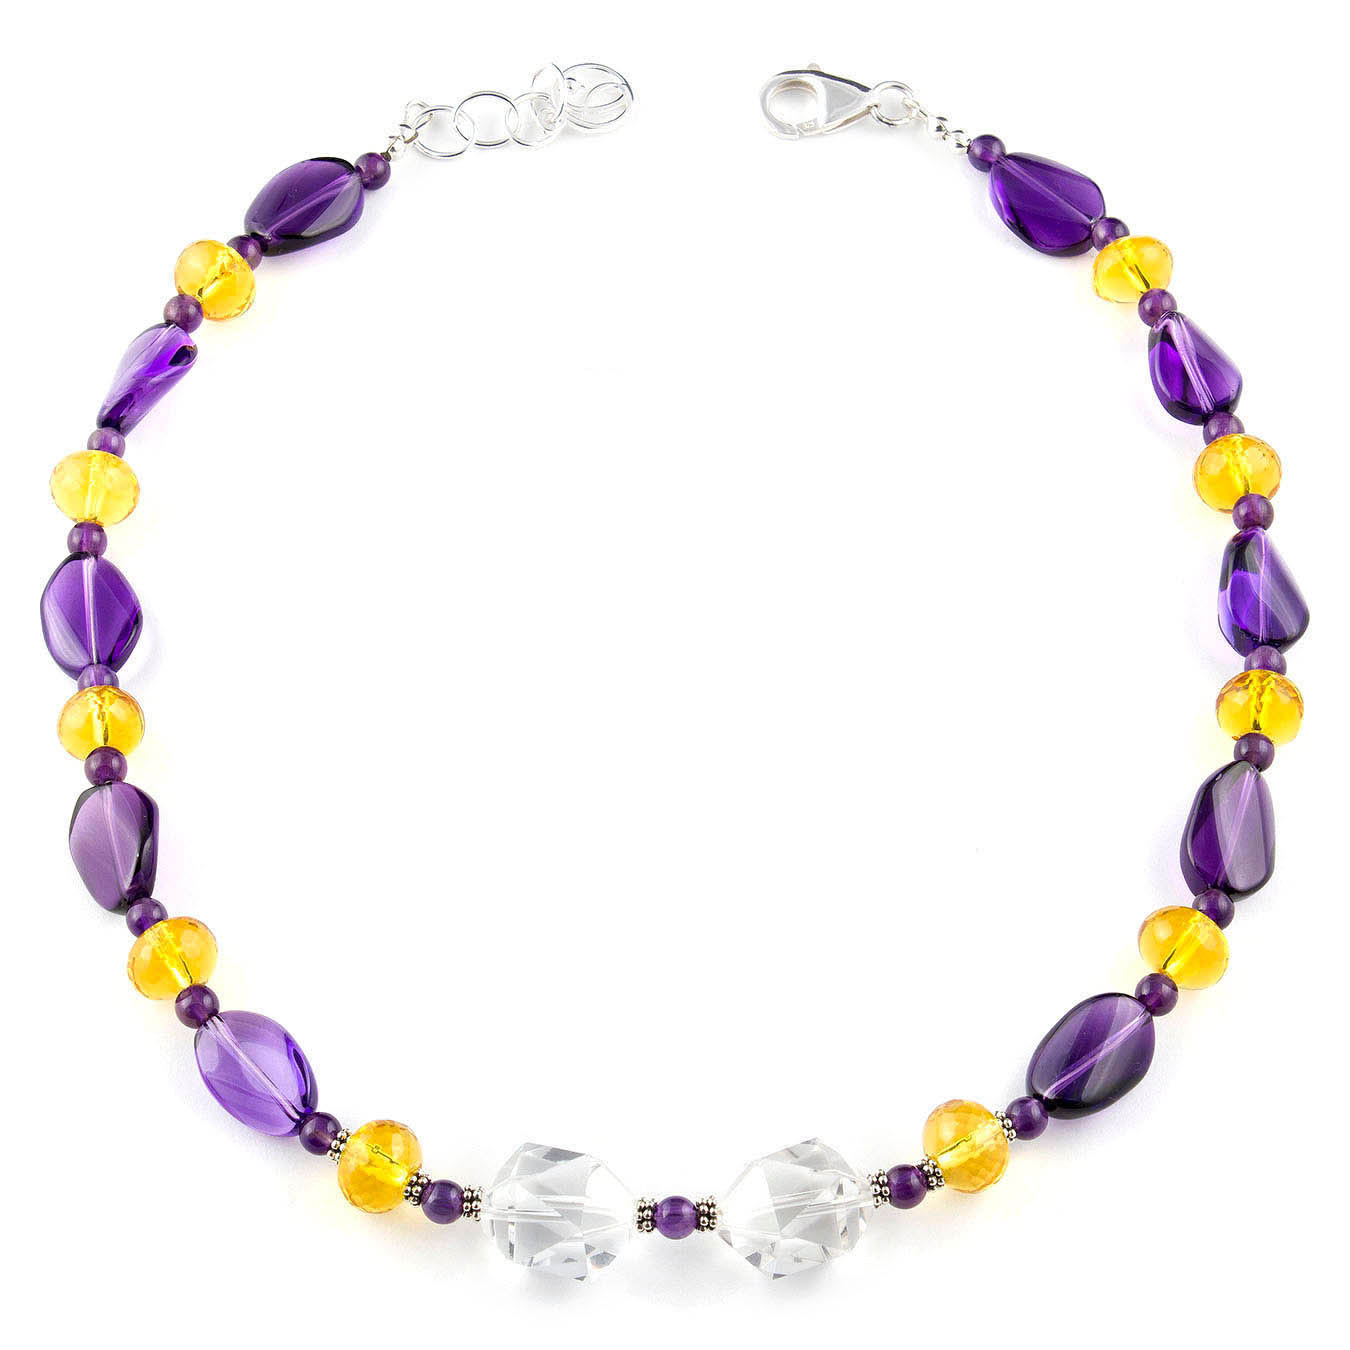 Handcrafted amethyst, citrine and rock crystal birthstone bead jewelry